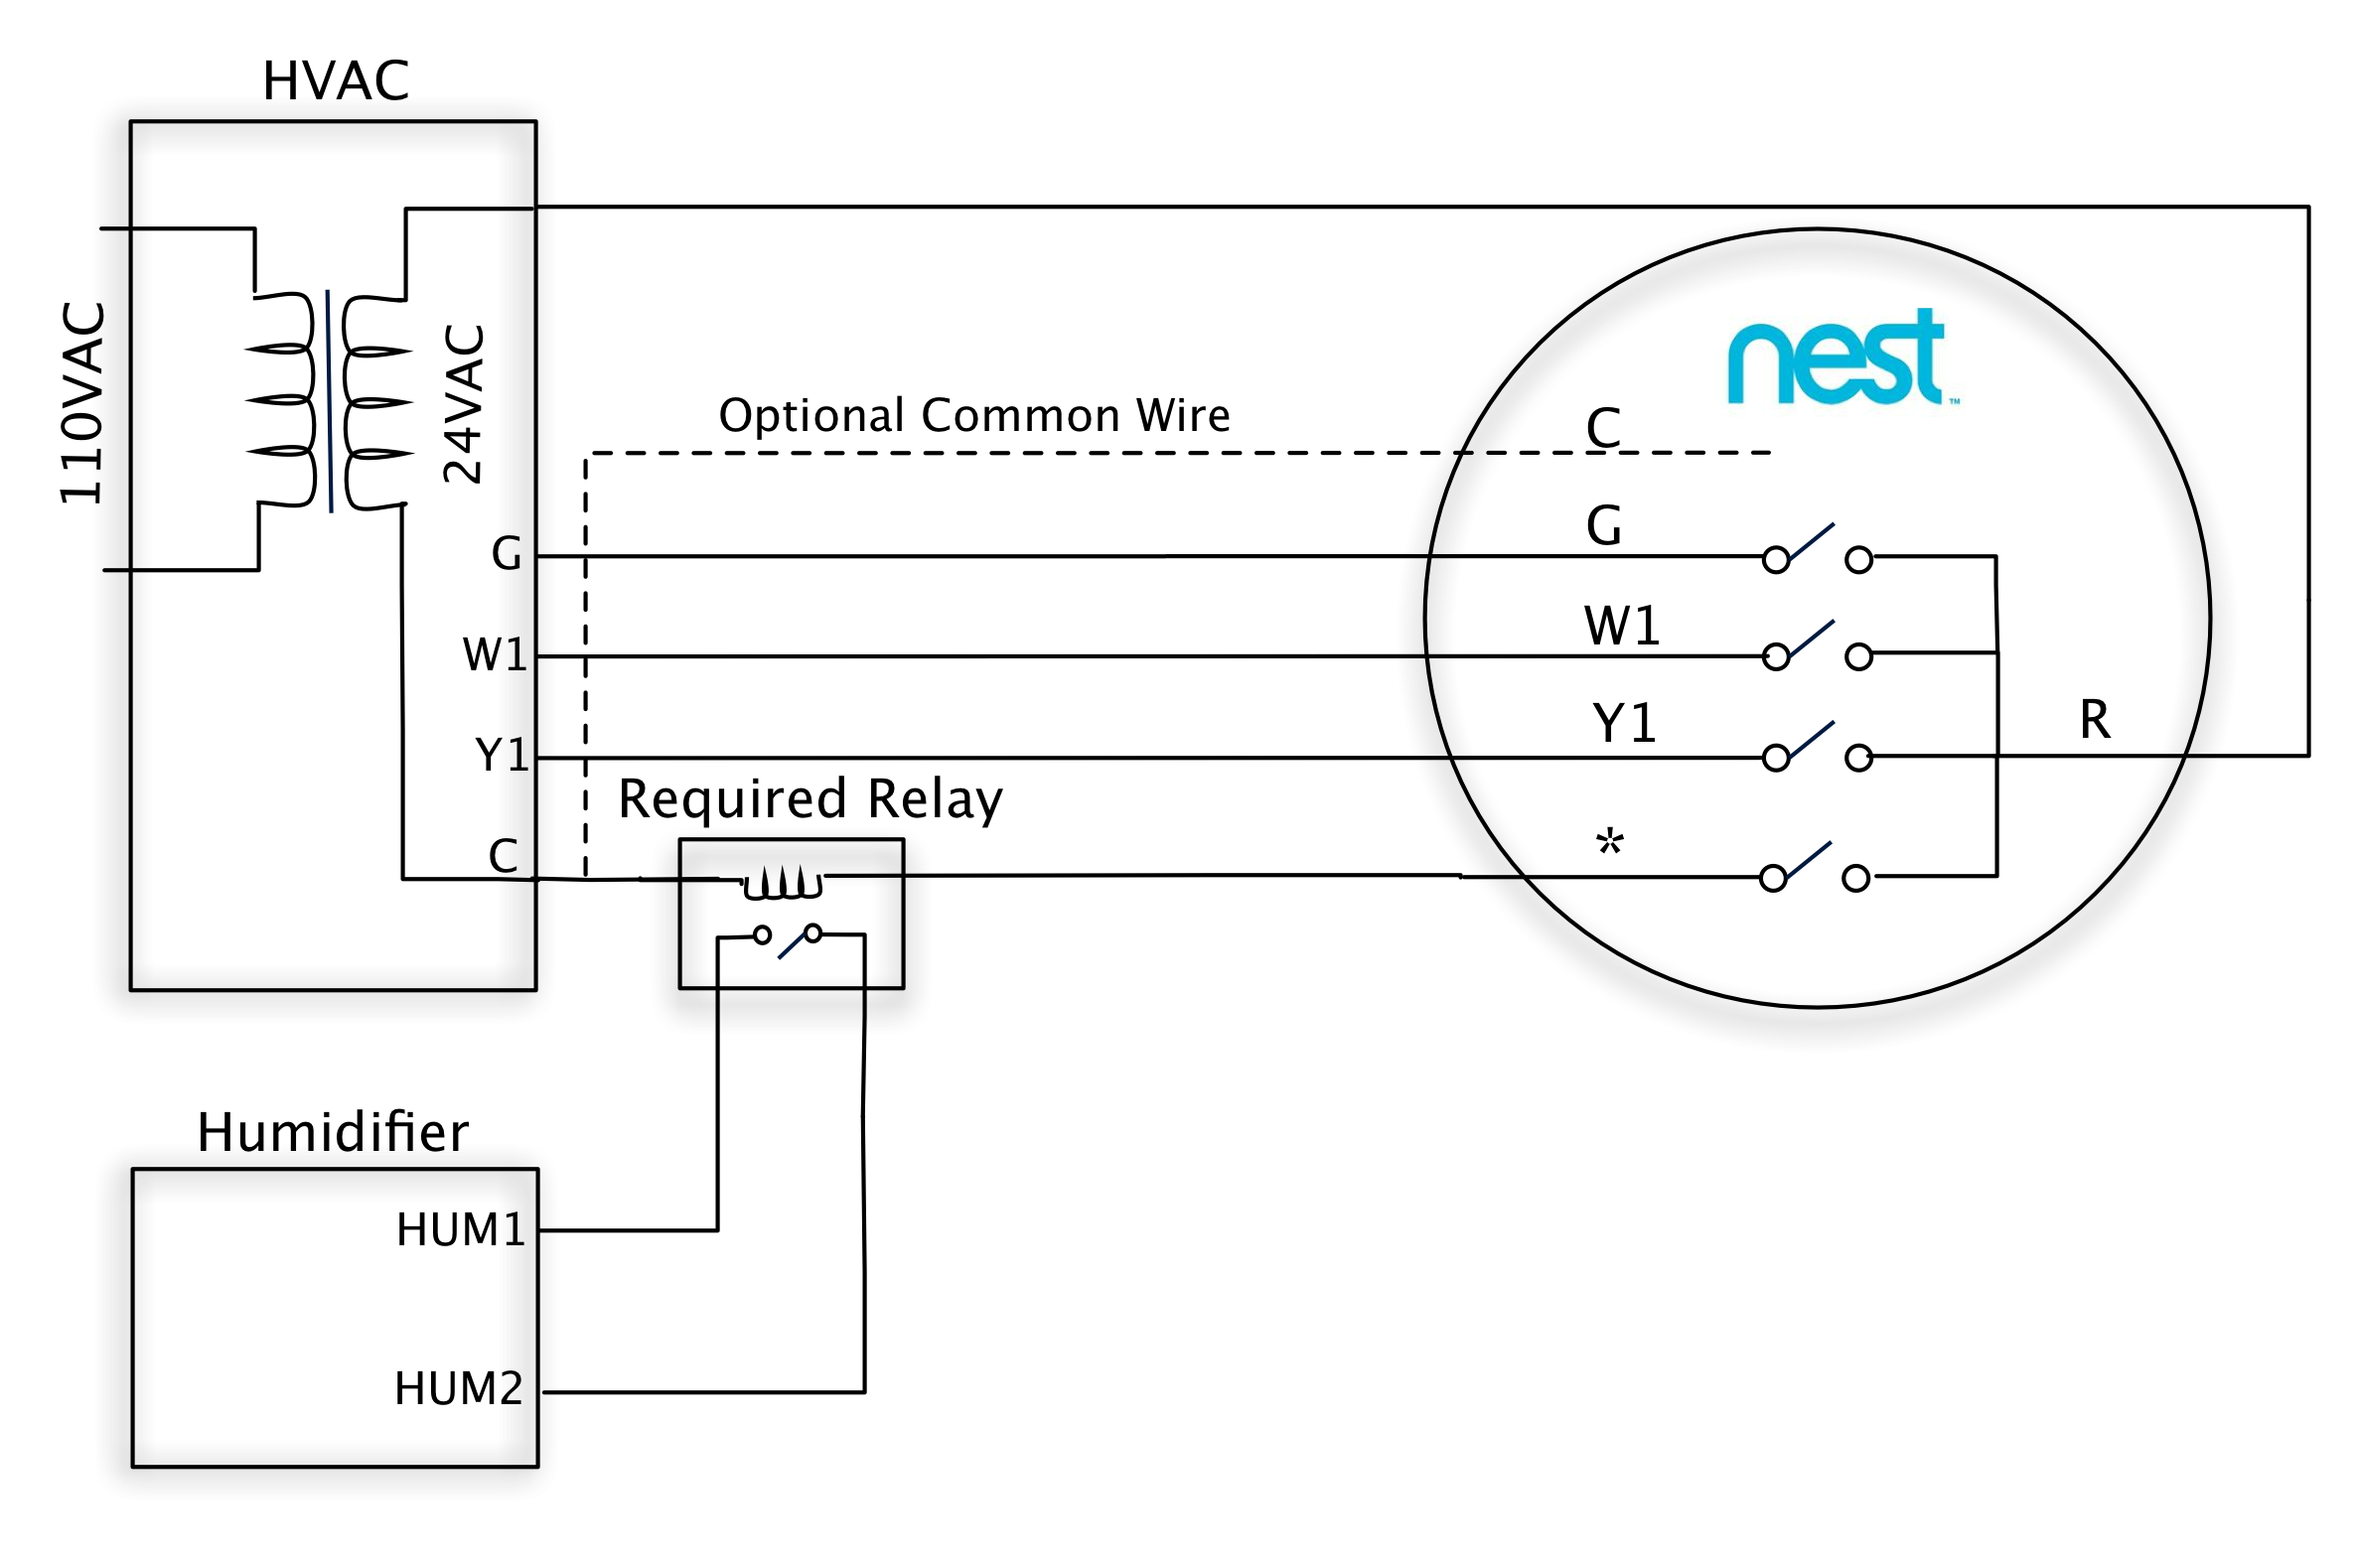 Nest Thermostat Wiring Diagram Of on halogen transformer circuit diagram, electronic thermostat circuit diagram, nest 2 stage heating wiring, nest smart thermostat vs honeywell, nest thermostat setup, nest thermostat problems, nest thermostat wires, nest thermostat installation, nest thermostat connections, nest thermostat humidifier wiring, nest zoned wiring, nest thermostat parts, nest thermostat review, nest learning thermostat wiring, nest thermostat heat pump, nest thermostat backplate, nest wiring guide, nest thermostat battery, nest thermostat wiring plate, nest thermostat controls,